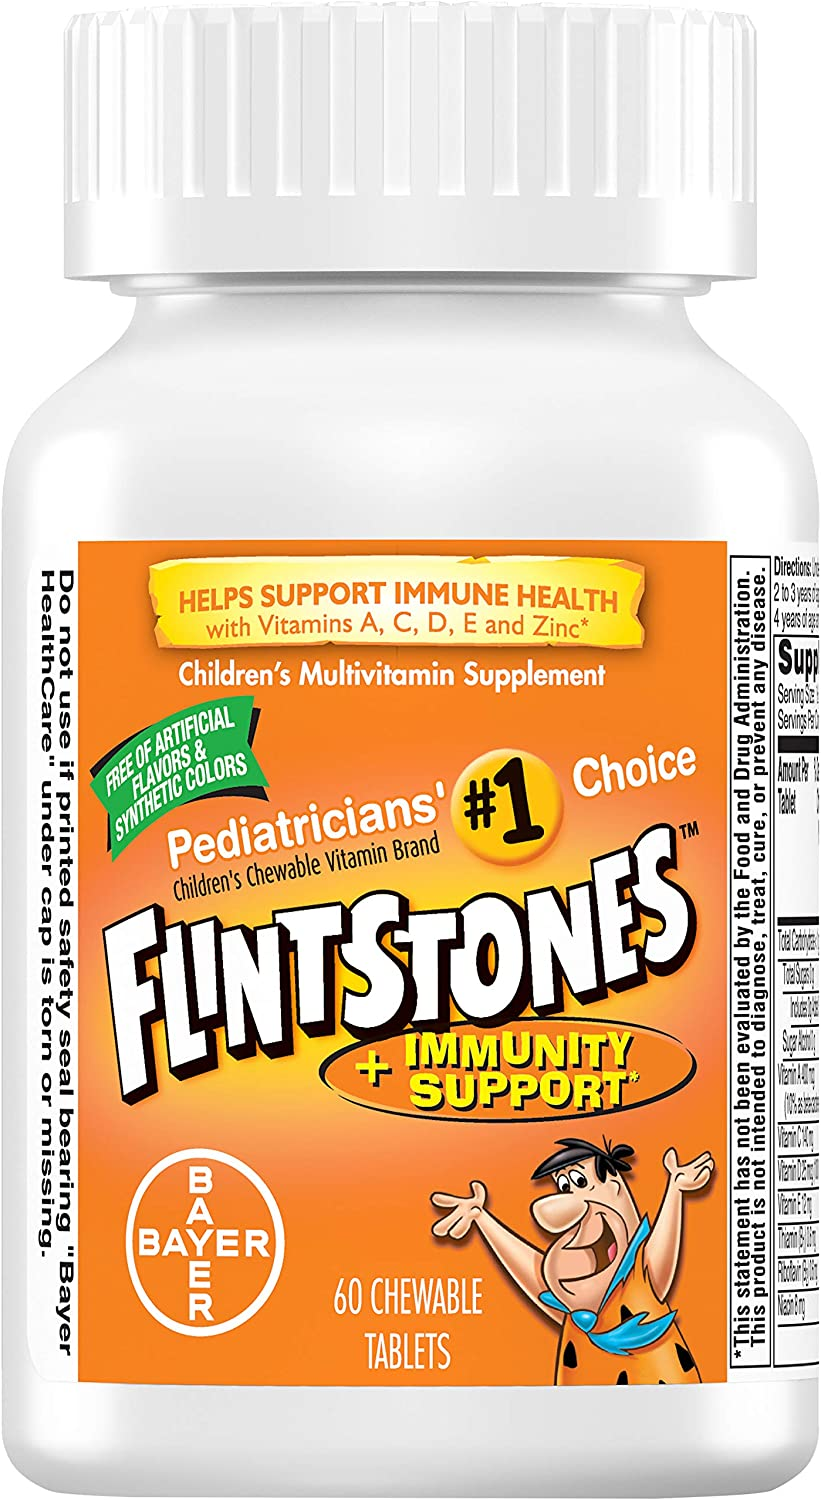 Flintstones® Plus Immunity Support Multivitamin Chewable Vitamins - 60ct